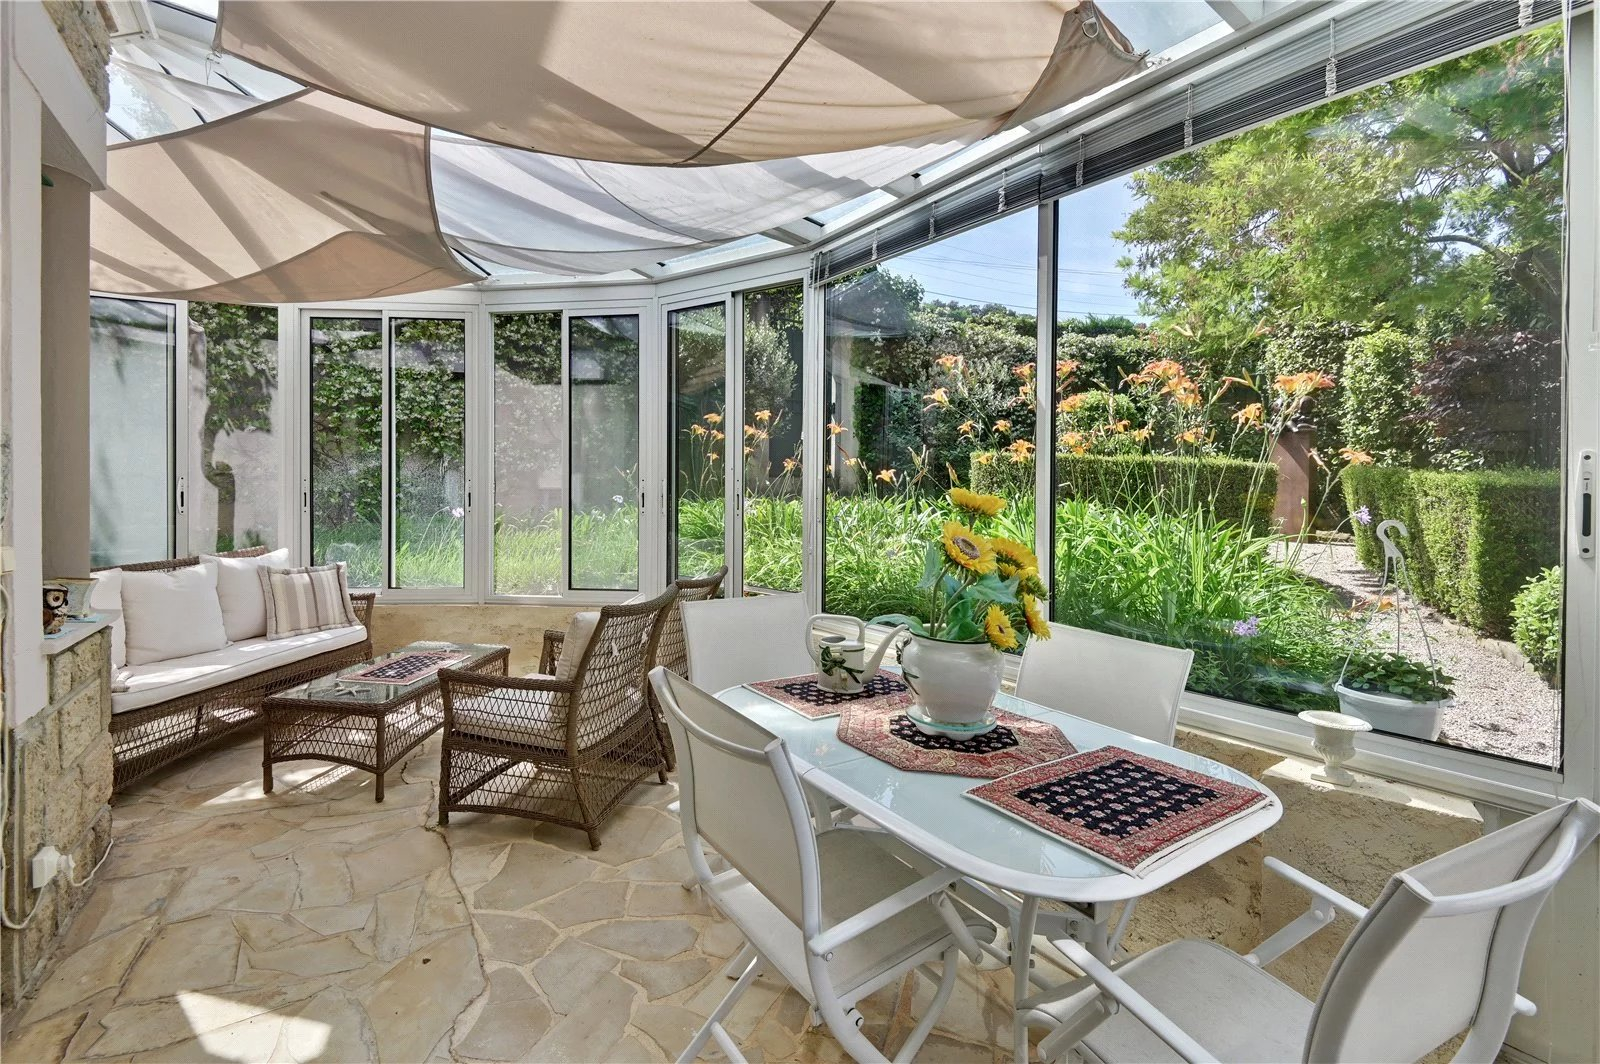 Buying Villa Cap d'Antibes Ideally located for the beaches